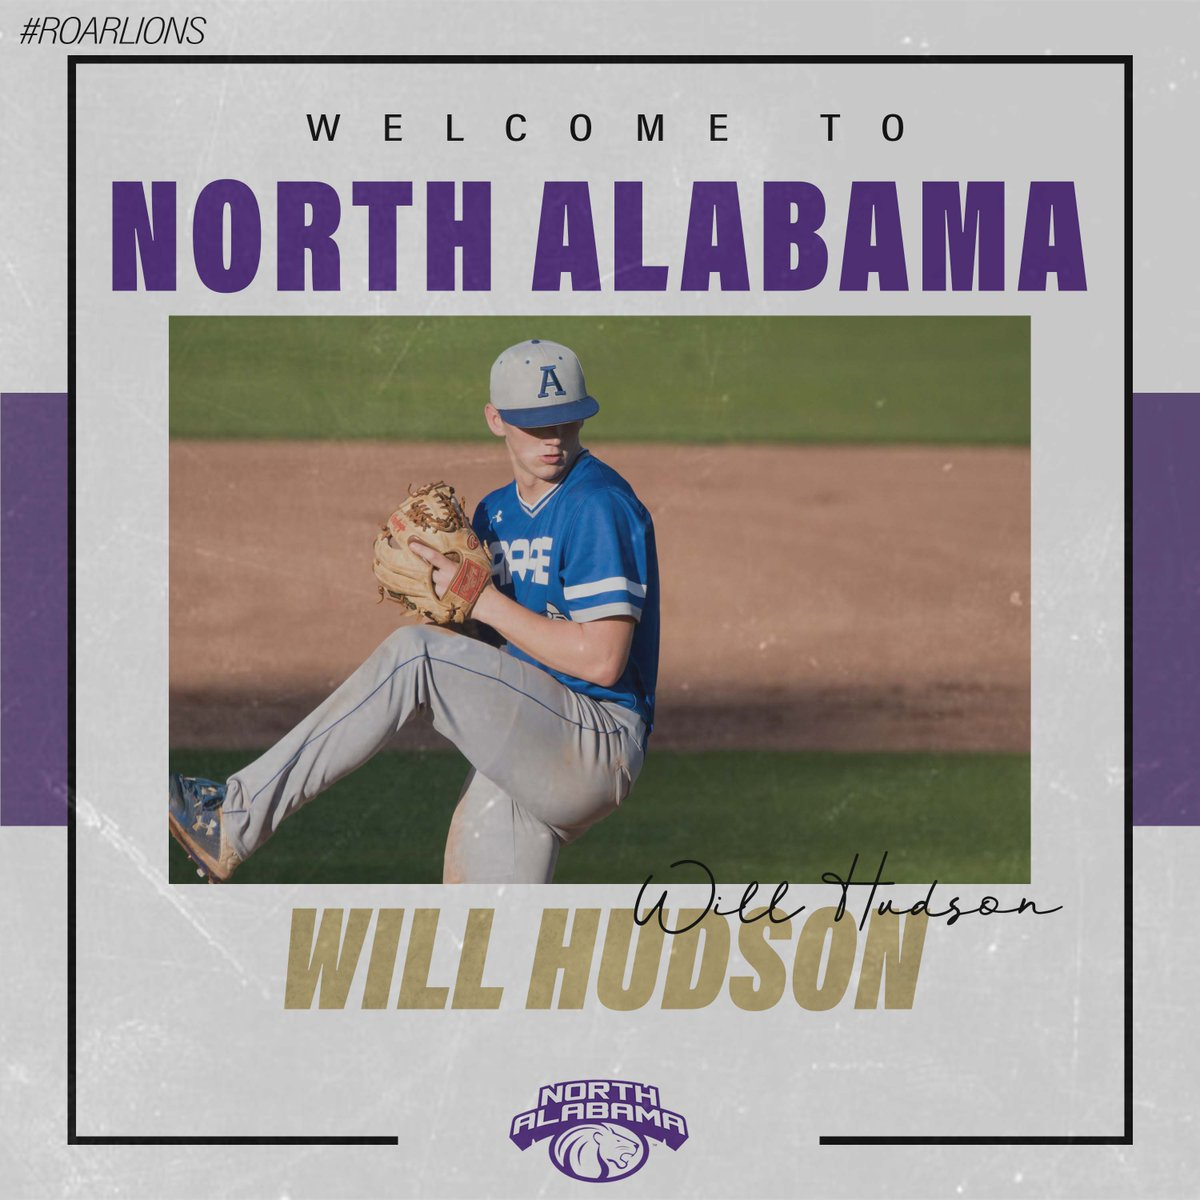 Please join us in Congratulating and Welcoming Will Hudson to the UNA Baseball Family!!!  Pos.                 RHP Hometown:     Arab, AL   HS:                  Arab High School  #RoarLions #RiseandRoar<br>http://pic.twitter.com/UkUI1zfvoU